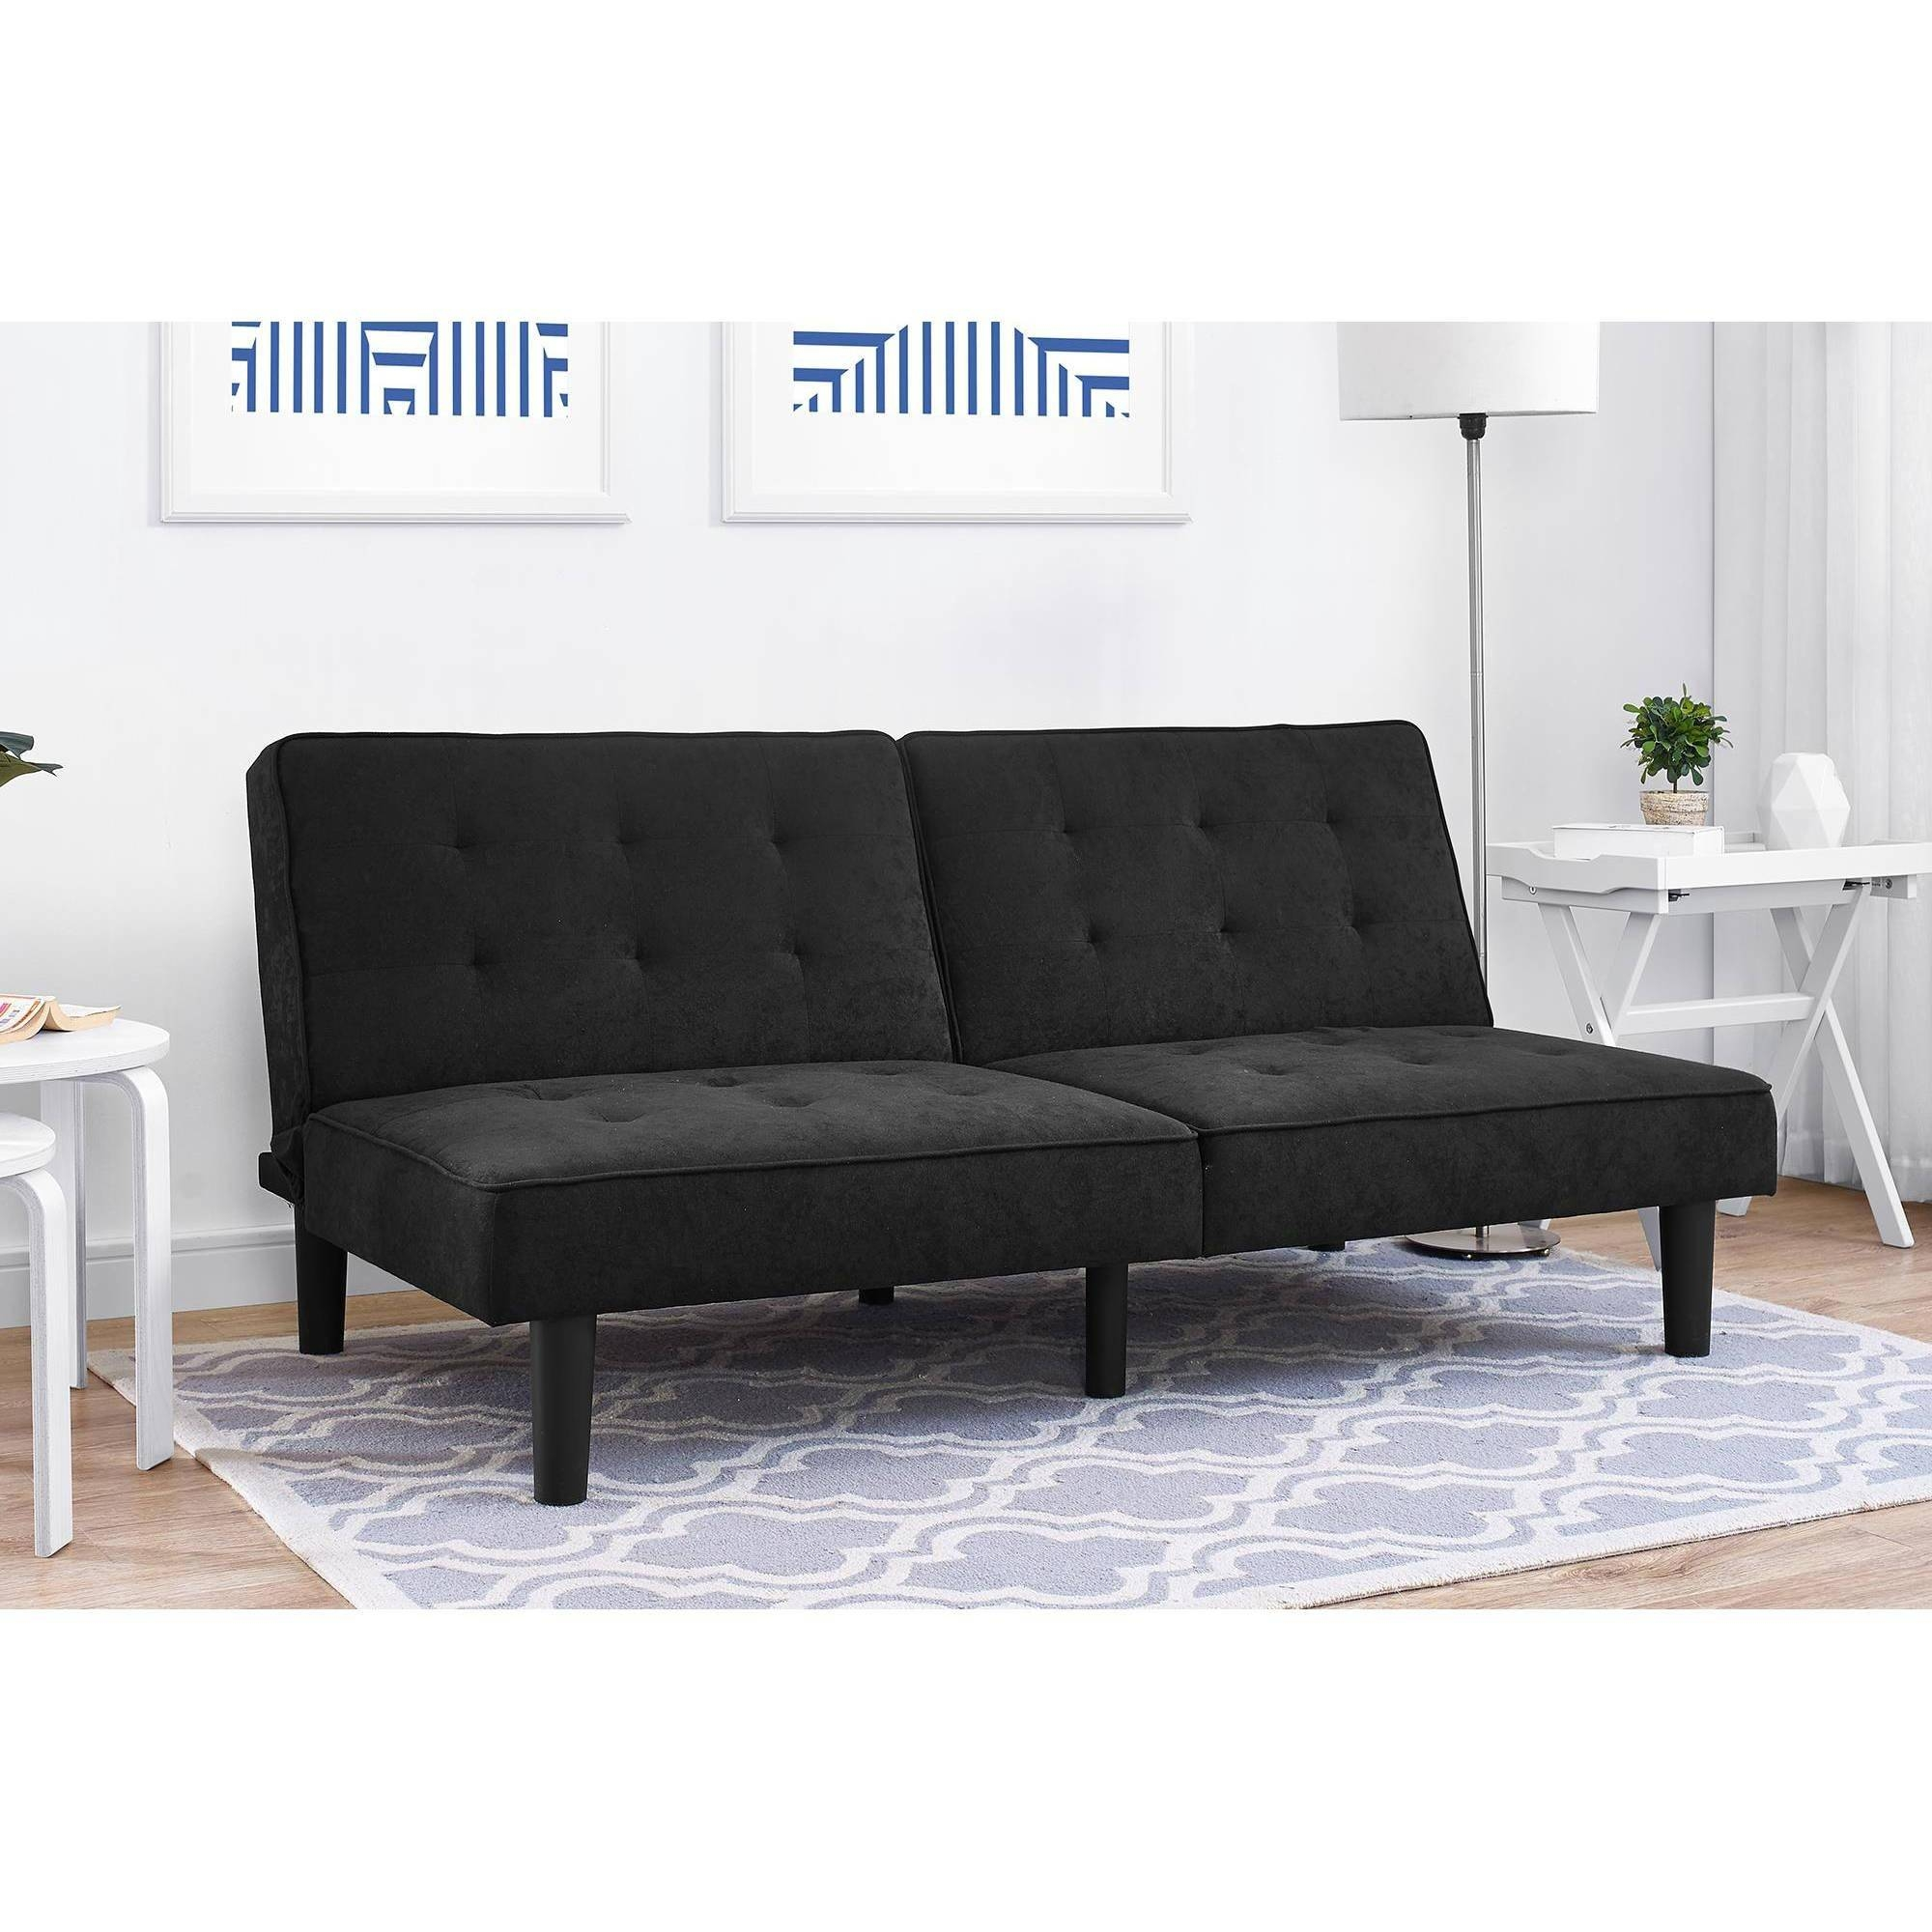 20 Best Mainstay Sofas   Sofa Ideas Within Mainstay Sofas (View 10 of 15)